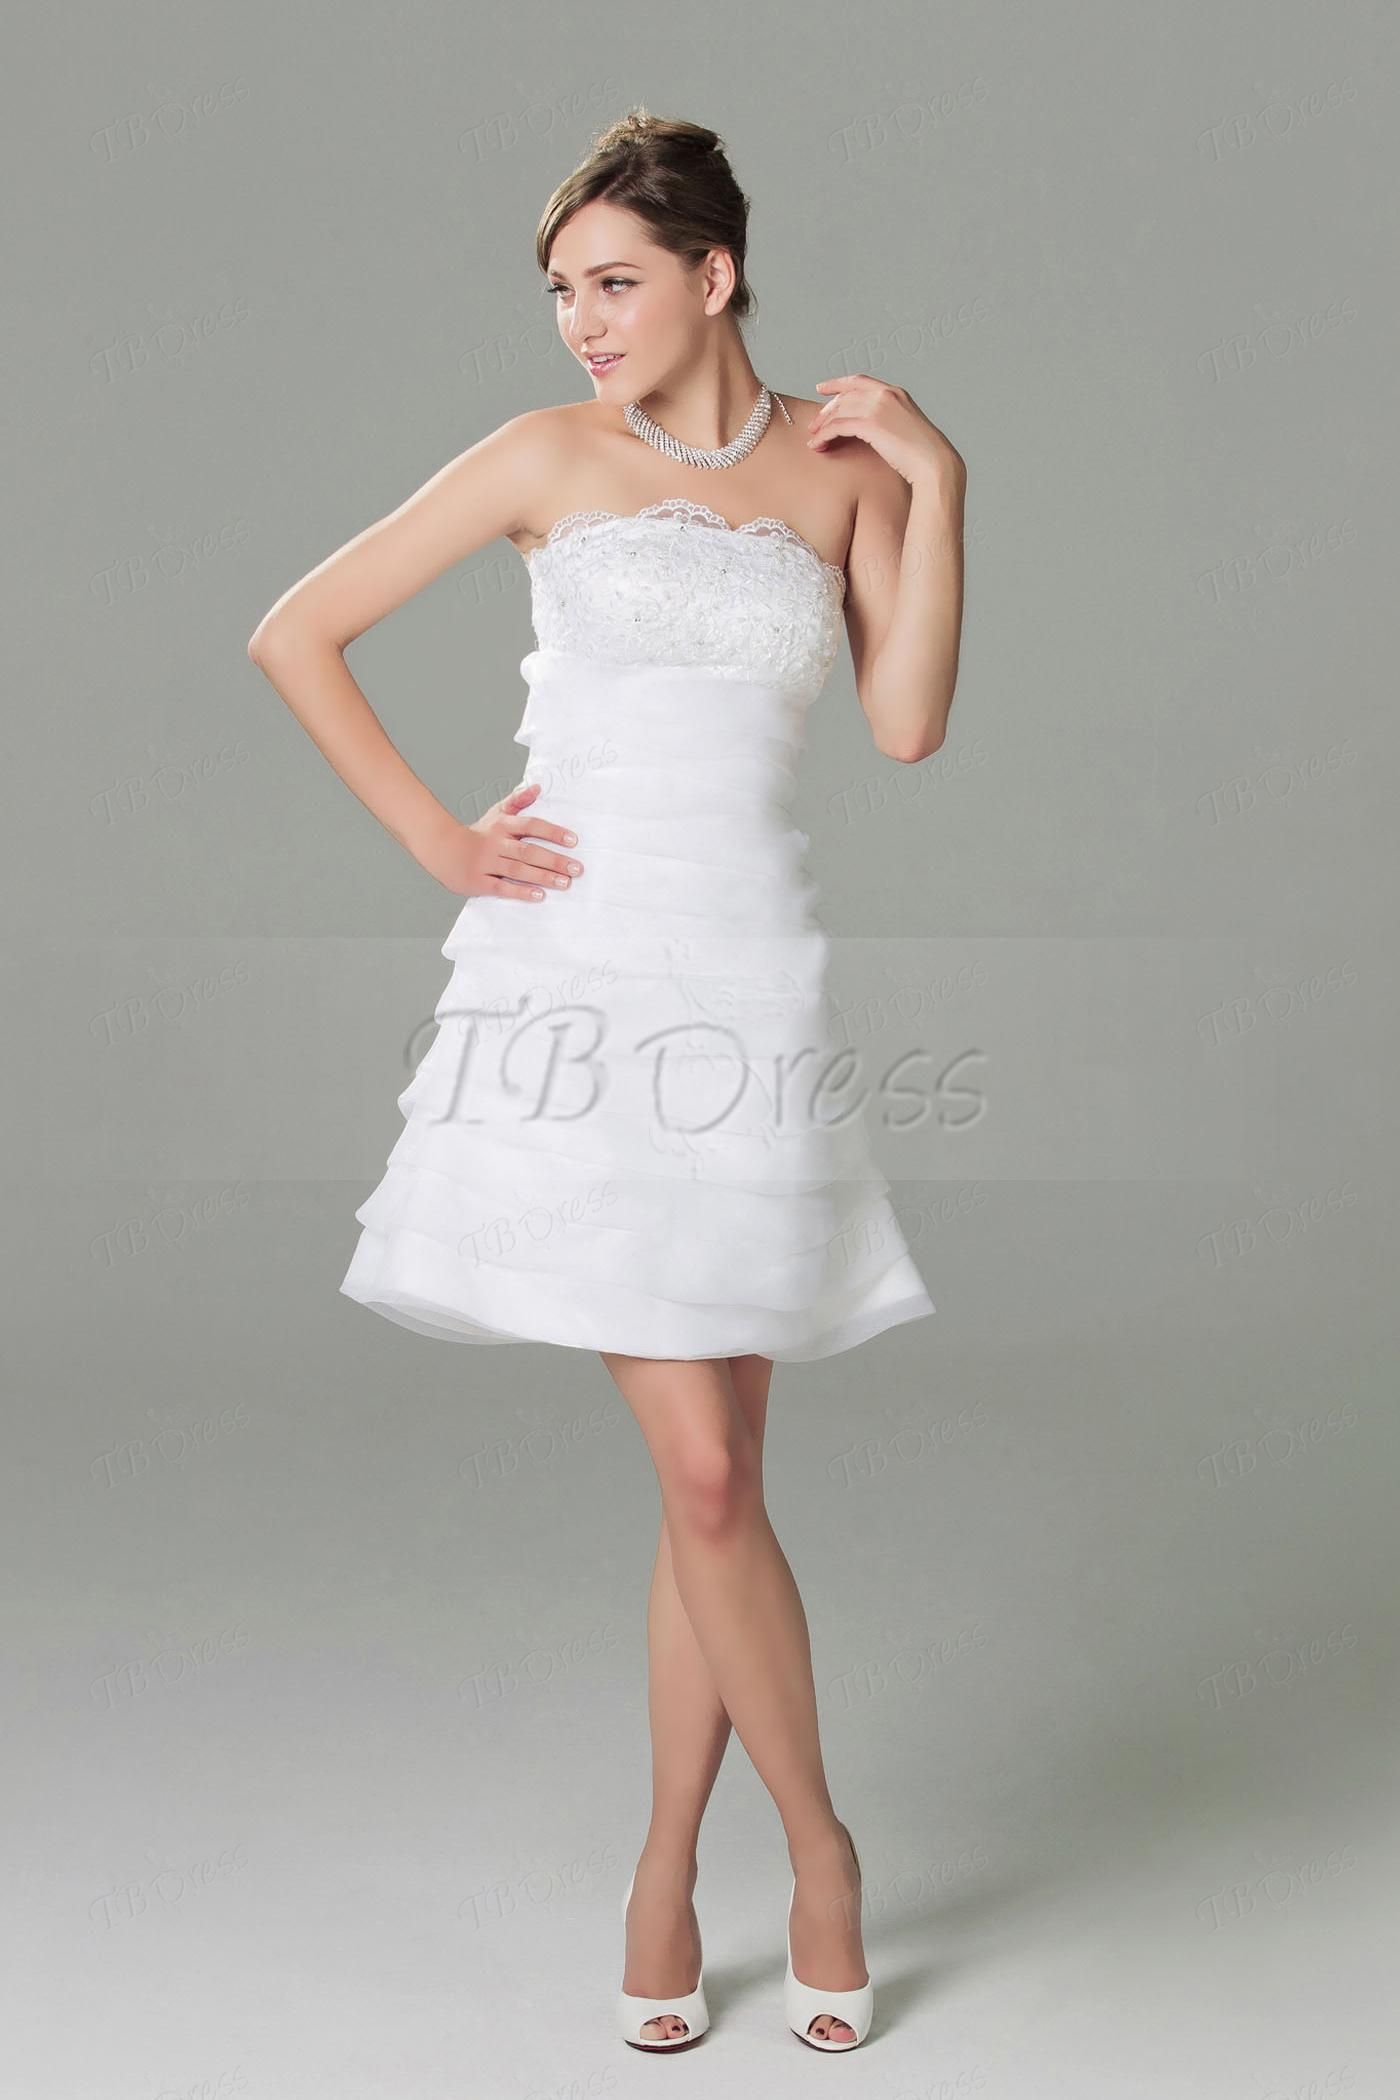 Mini white wedding dress  SheathColumn Strapless Neckline Knee Length Tiered Dariaus Beach